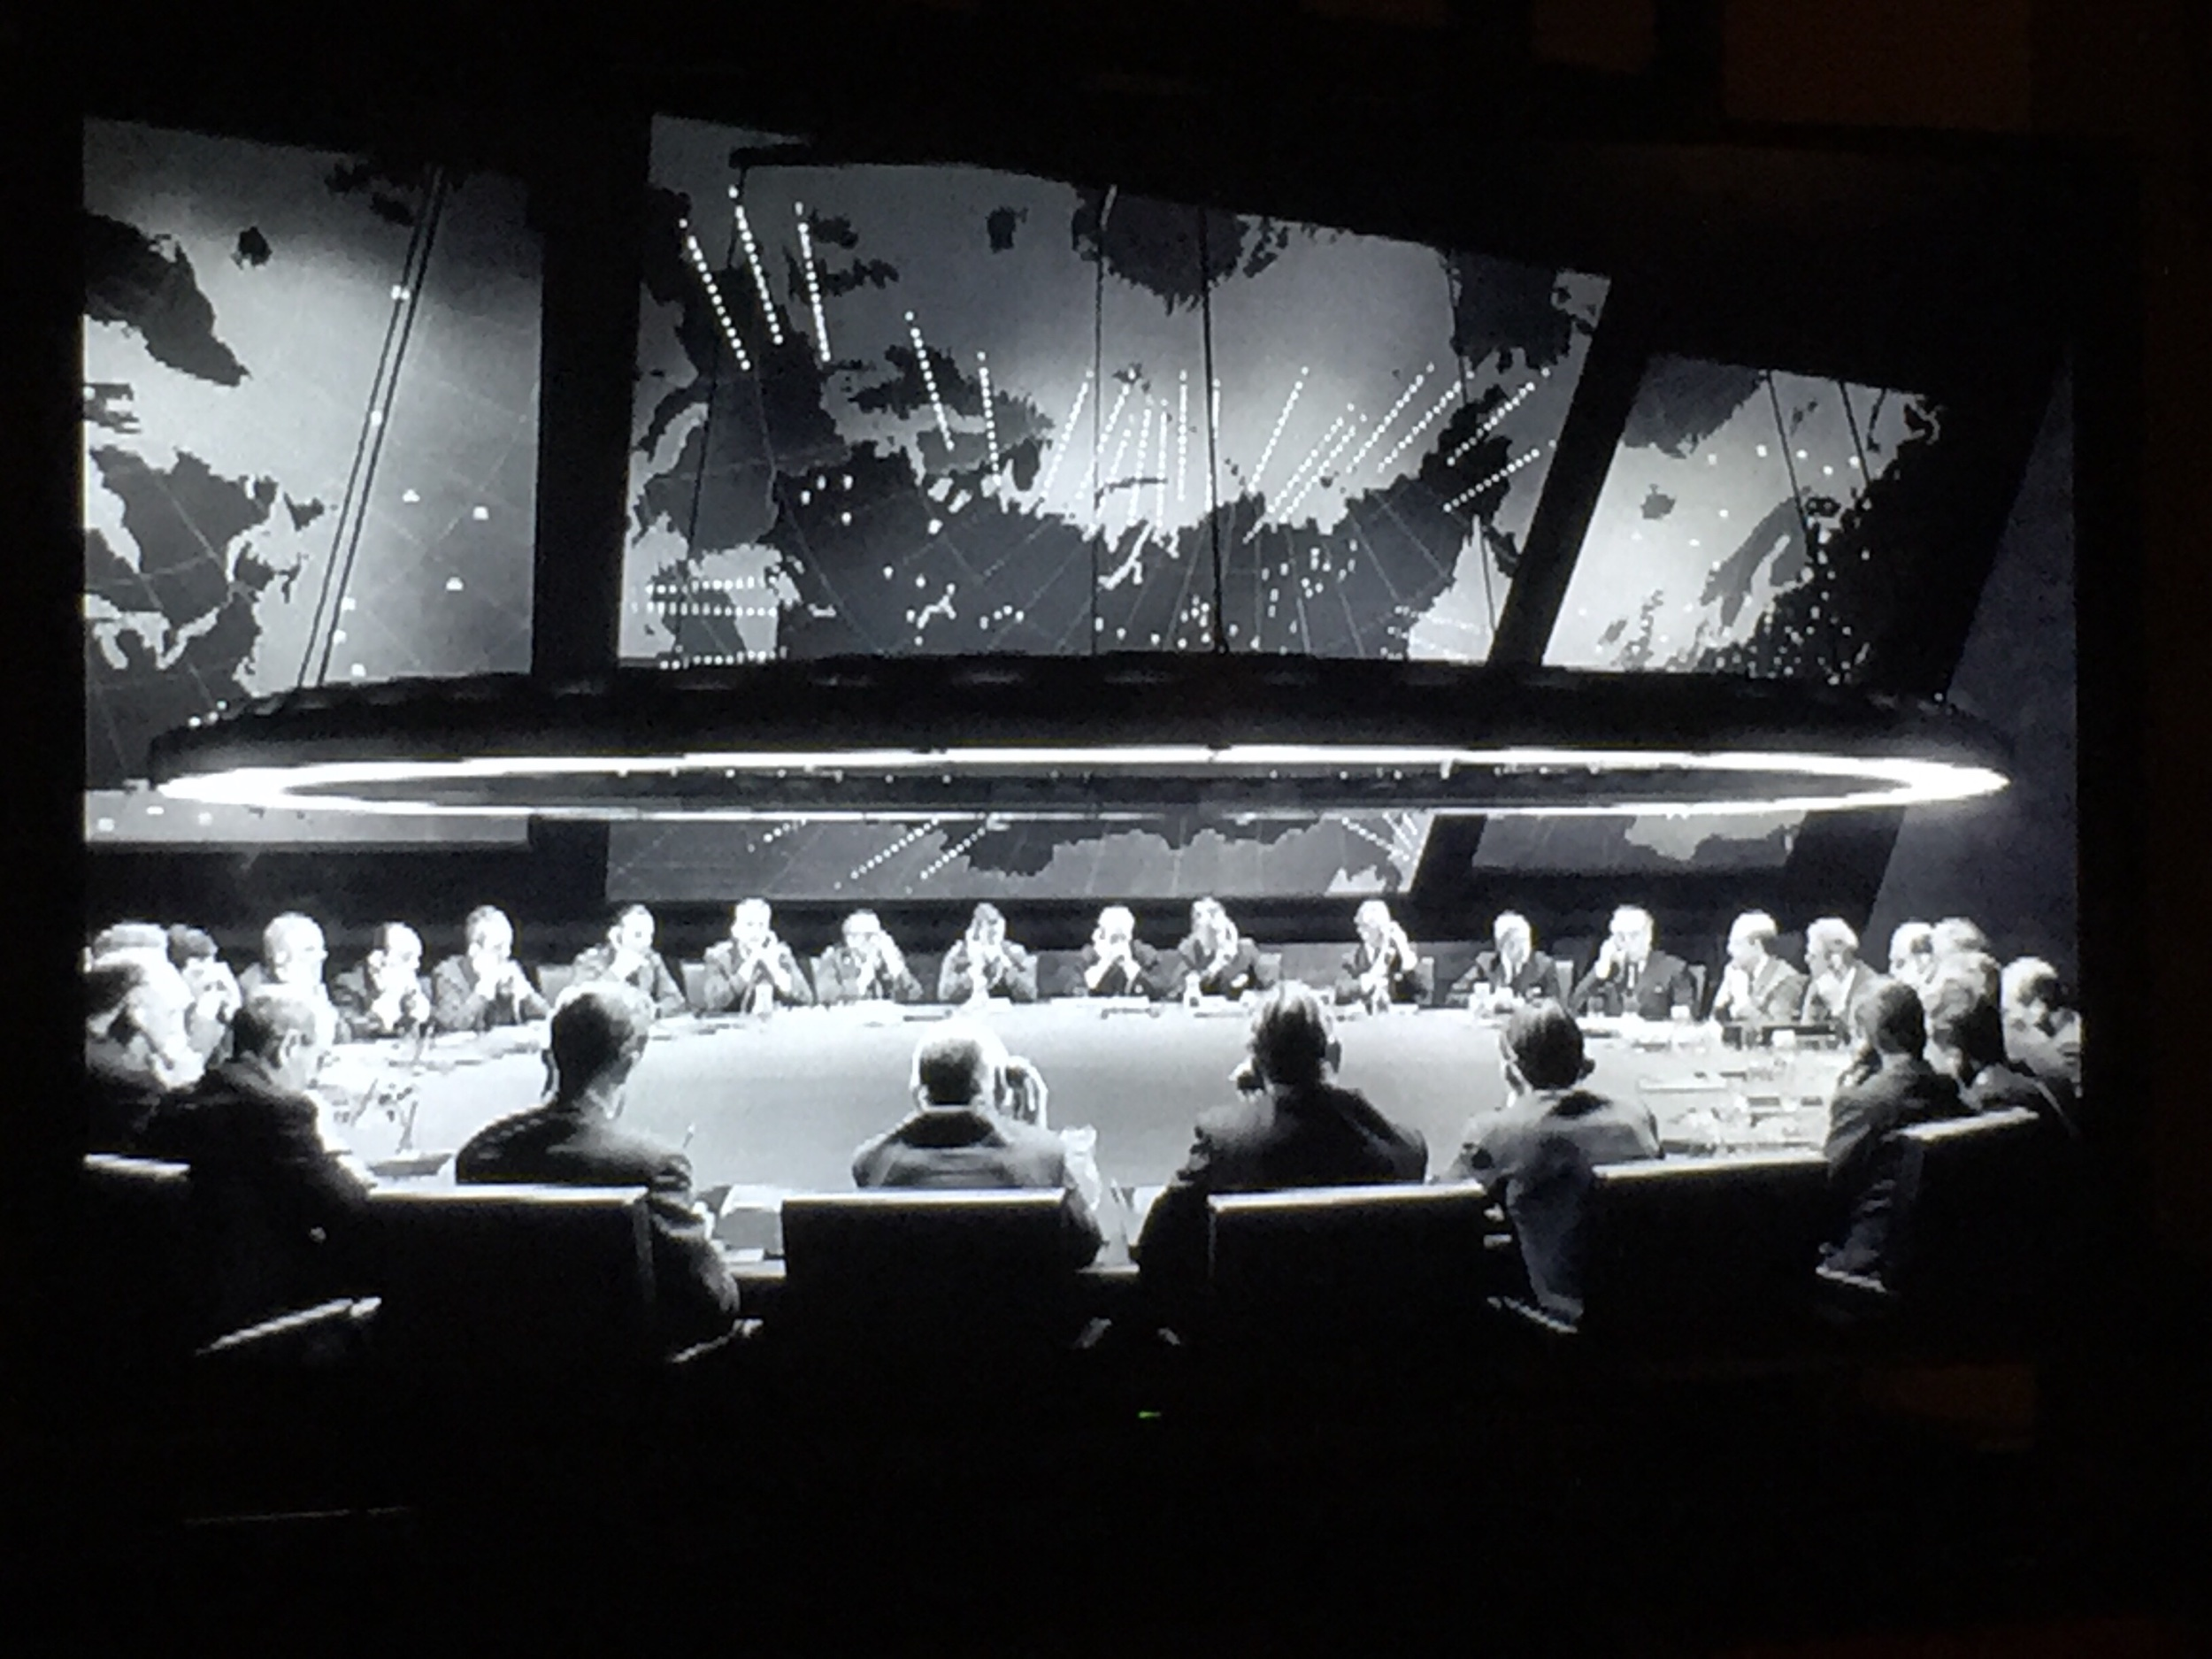 July 16/19 - Watched the incredible Dr. Strangelove. Fascinating after reading the stories by Ken Adam.